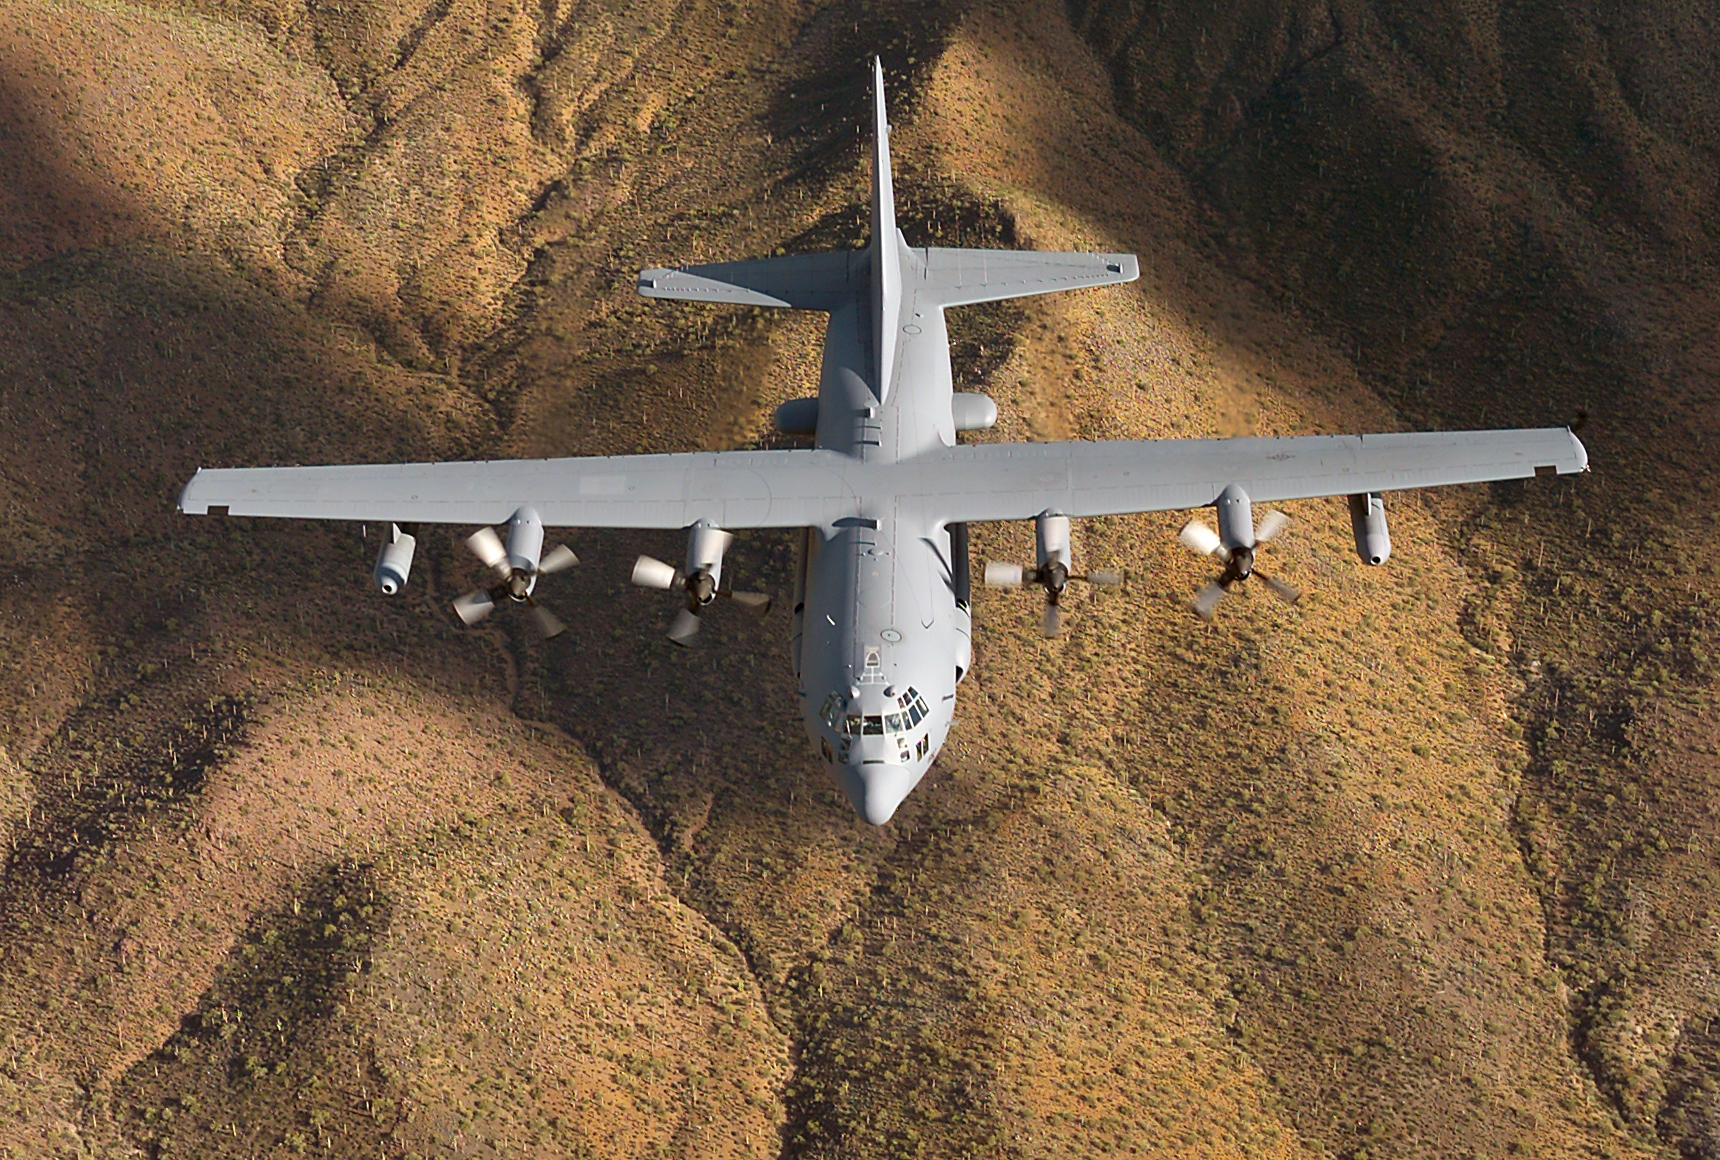 An image of an EC-130H Compass Call aircraft stationed at Davis-Monthan AFB.